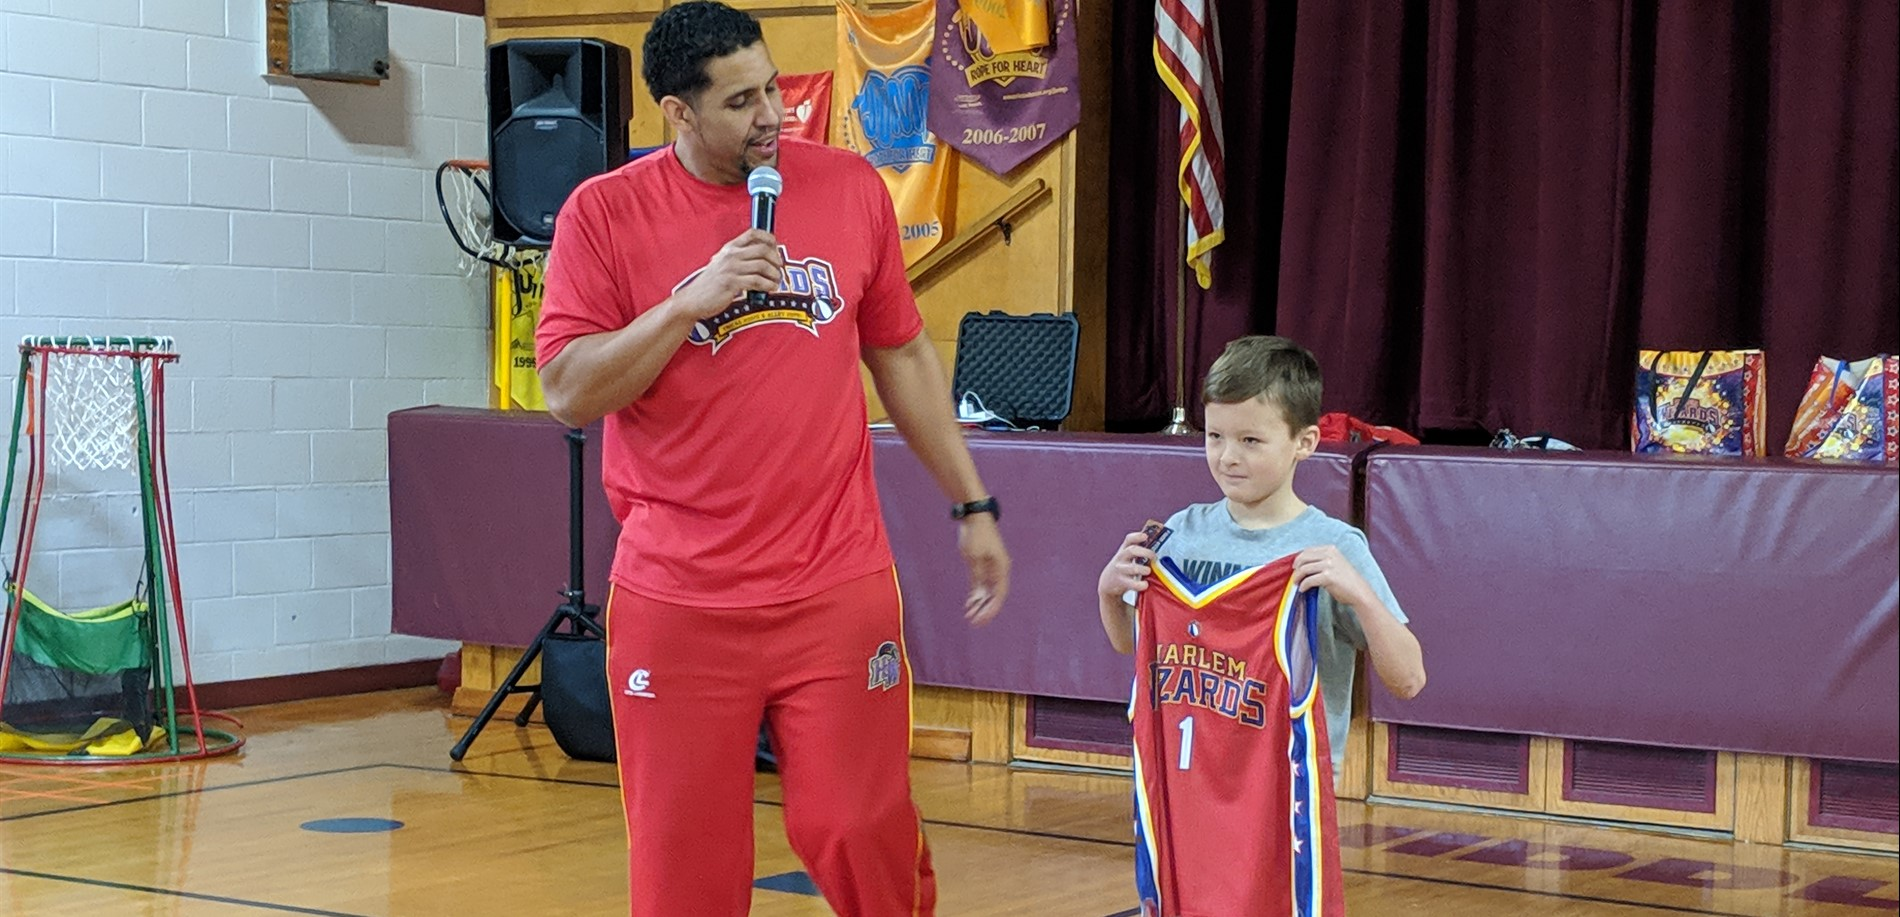 Harlem Wizards Visiting MRS